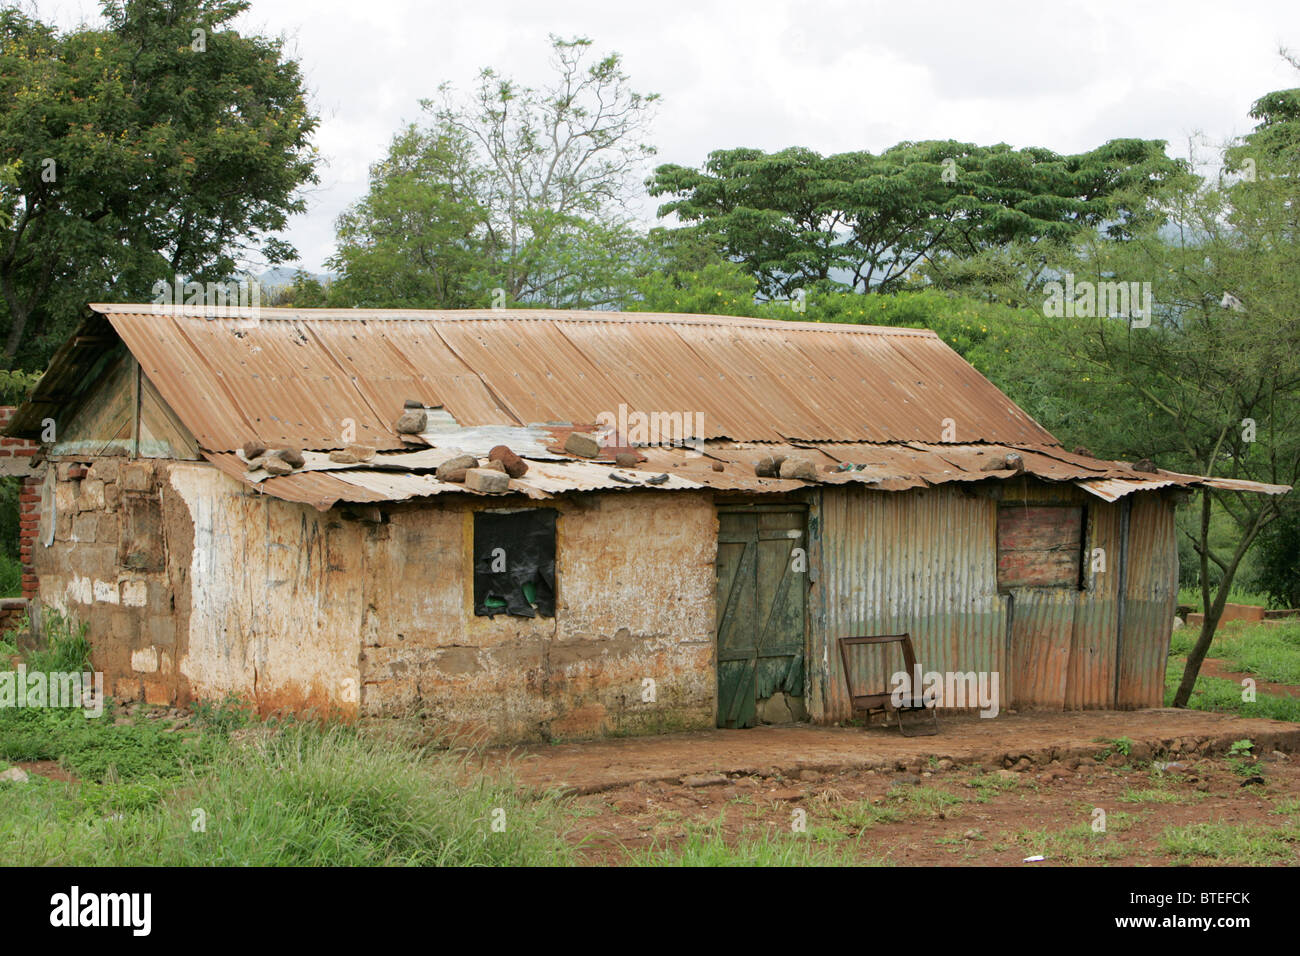 Derelict old corrugated iron and mud-brick house - Stock Image